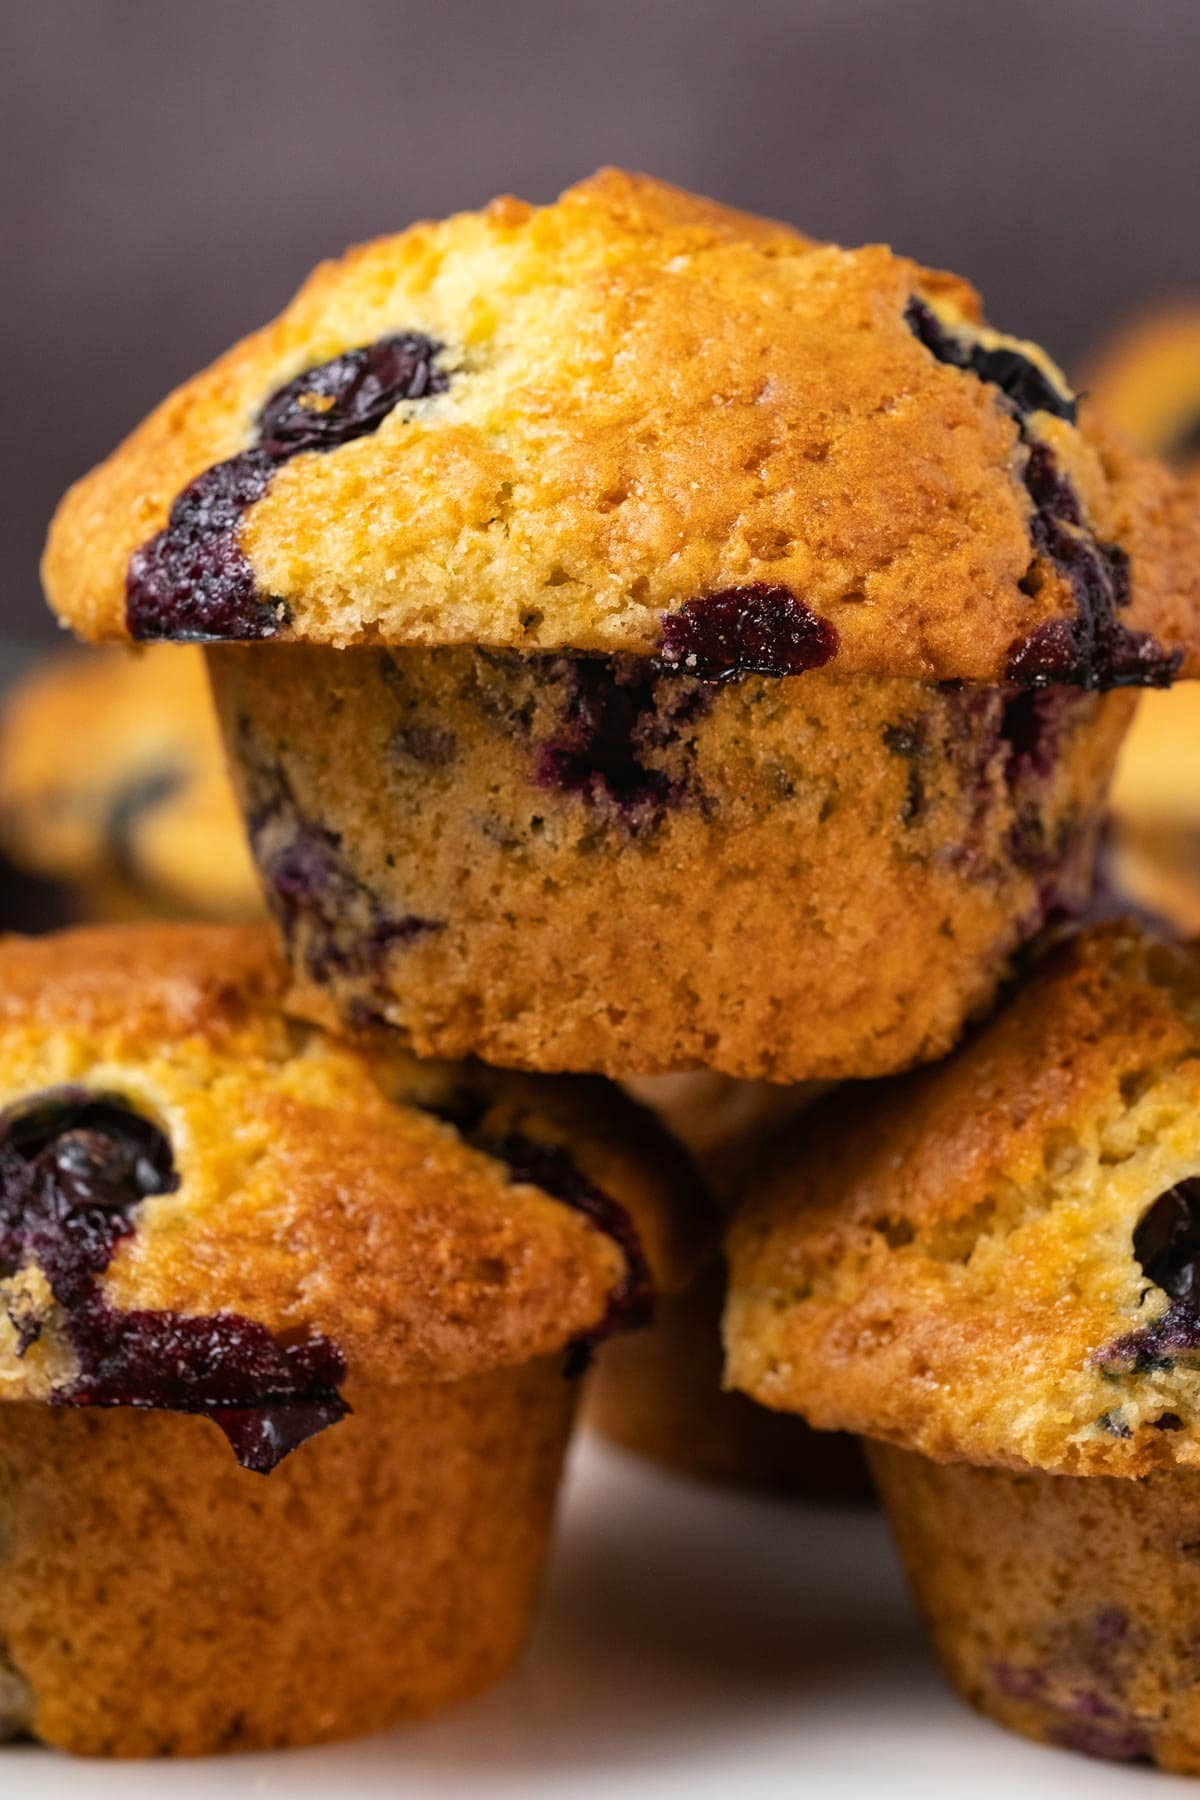 Blueberry muffins stacked up on a white plate.